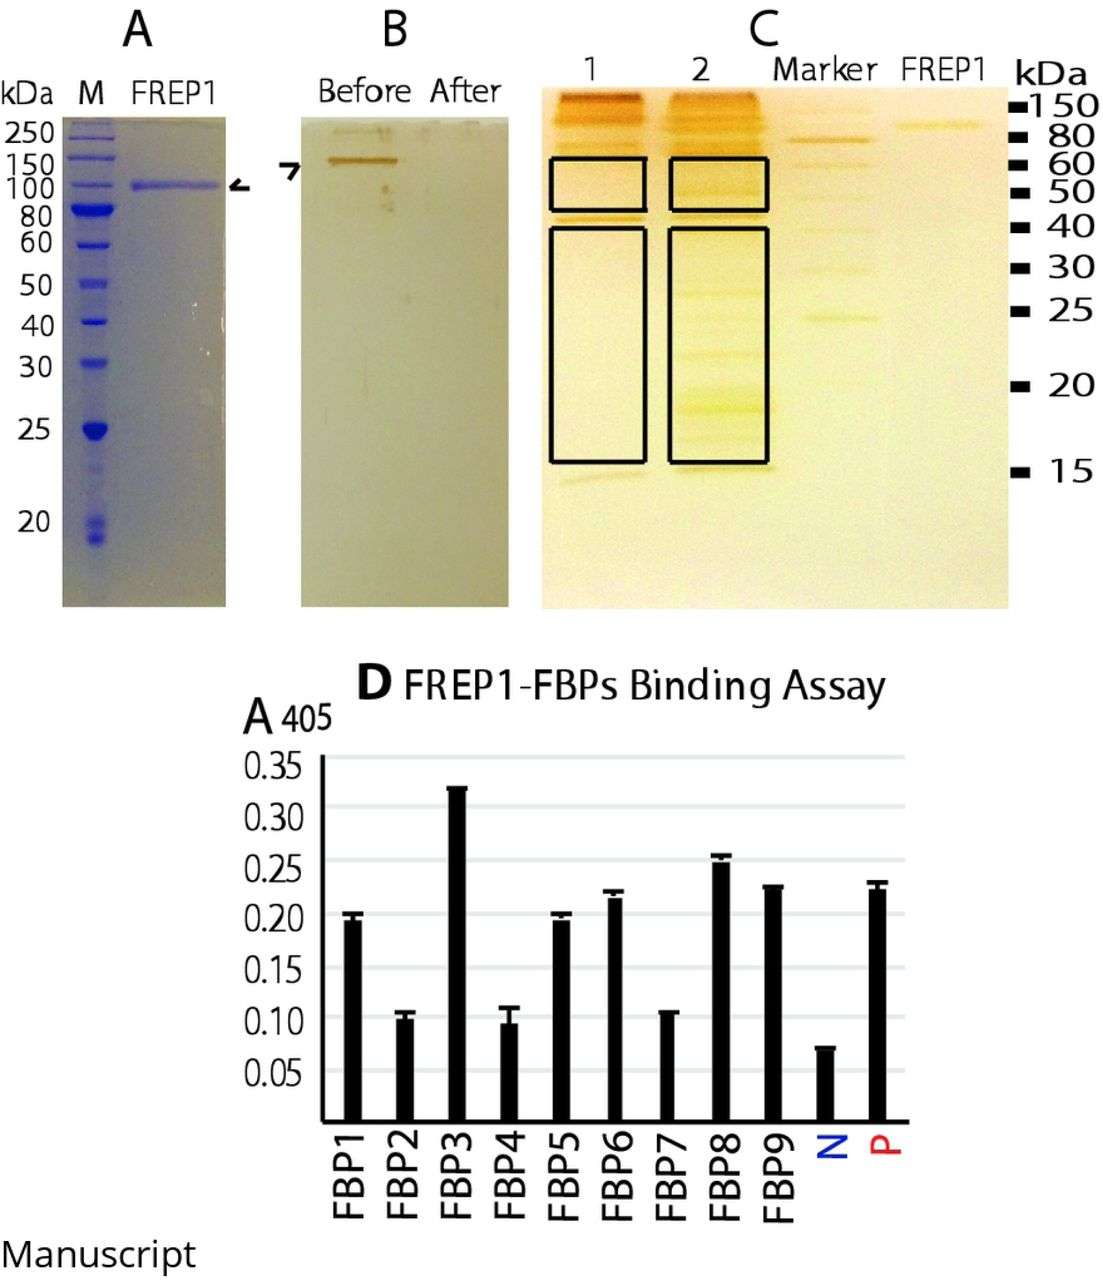 Protein sequence comparison and purified Ab transmission-blocking assays. A ) Sequence alignment of human α-tubulin (HA), P. falciparum α-tubulin-1 (PfA), human β-tubulin (HB), P. falciparum β-tubulin (PfB). B ) Purified rabbit anti-human α-tubulin polyclonal Ab (labeled with α) significantly reduced the number of P. falciparum oocysts in An. gambiae midguts, while purified Ab against β-tubulin (labeled with β) did not inhibit P. falciparum transmission to An. gambiae. A non-related purified rabbit polyclonal Ab (anti-V5, labeled with control) was used as the negative control. Wilcoxon test was used to calculated P-value. The experiment was repeated twice and the results were similar.